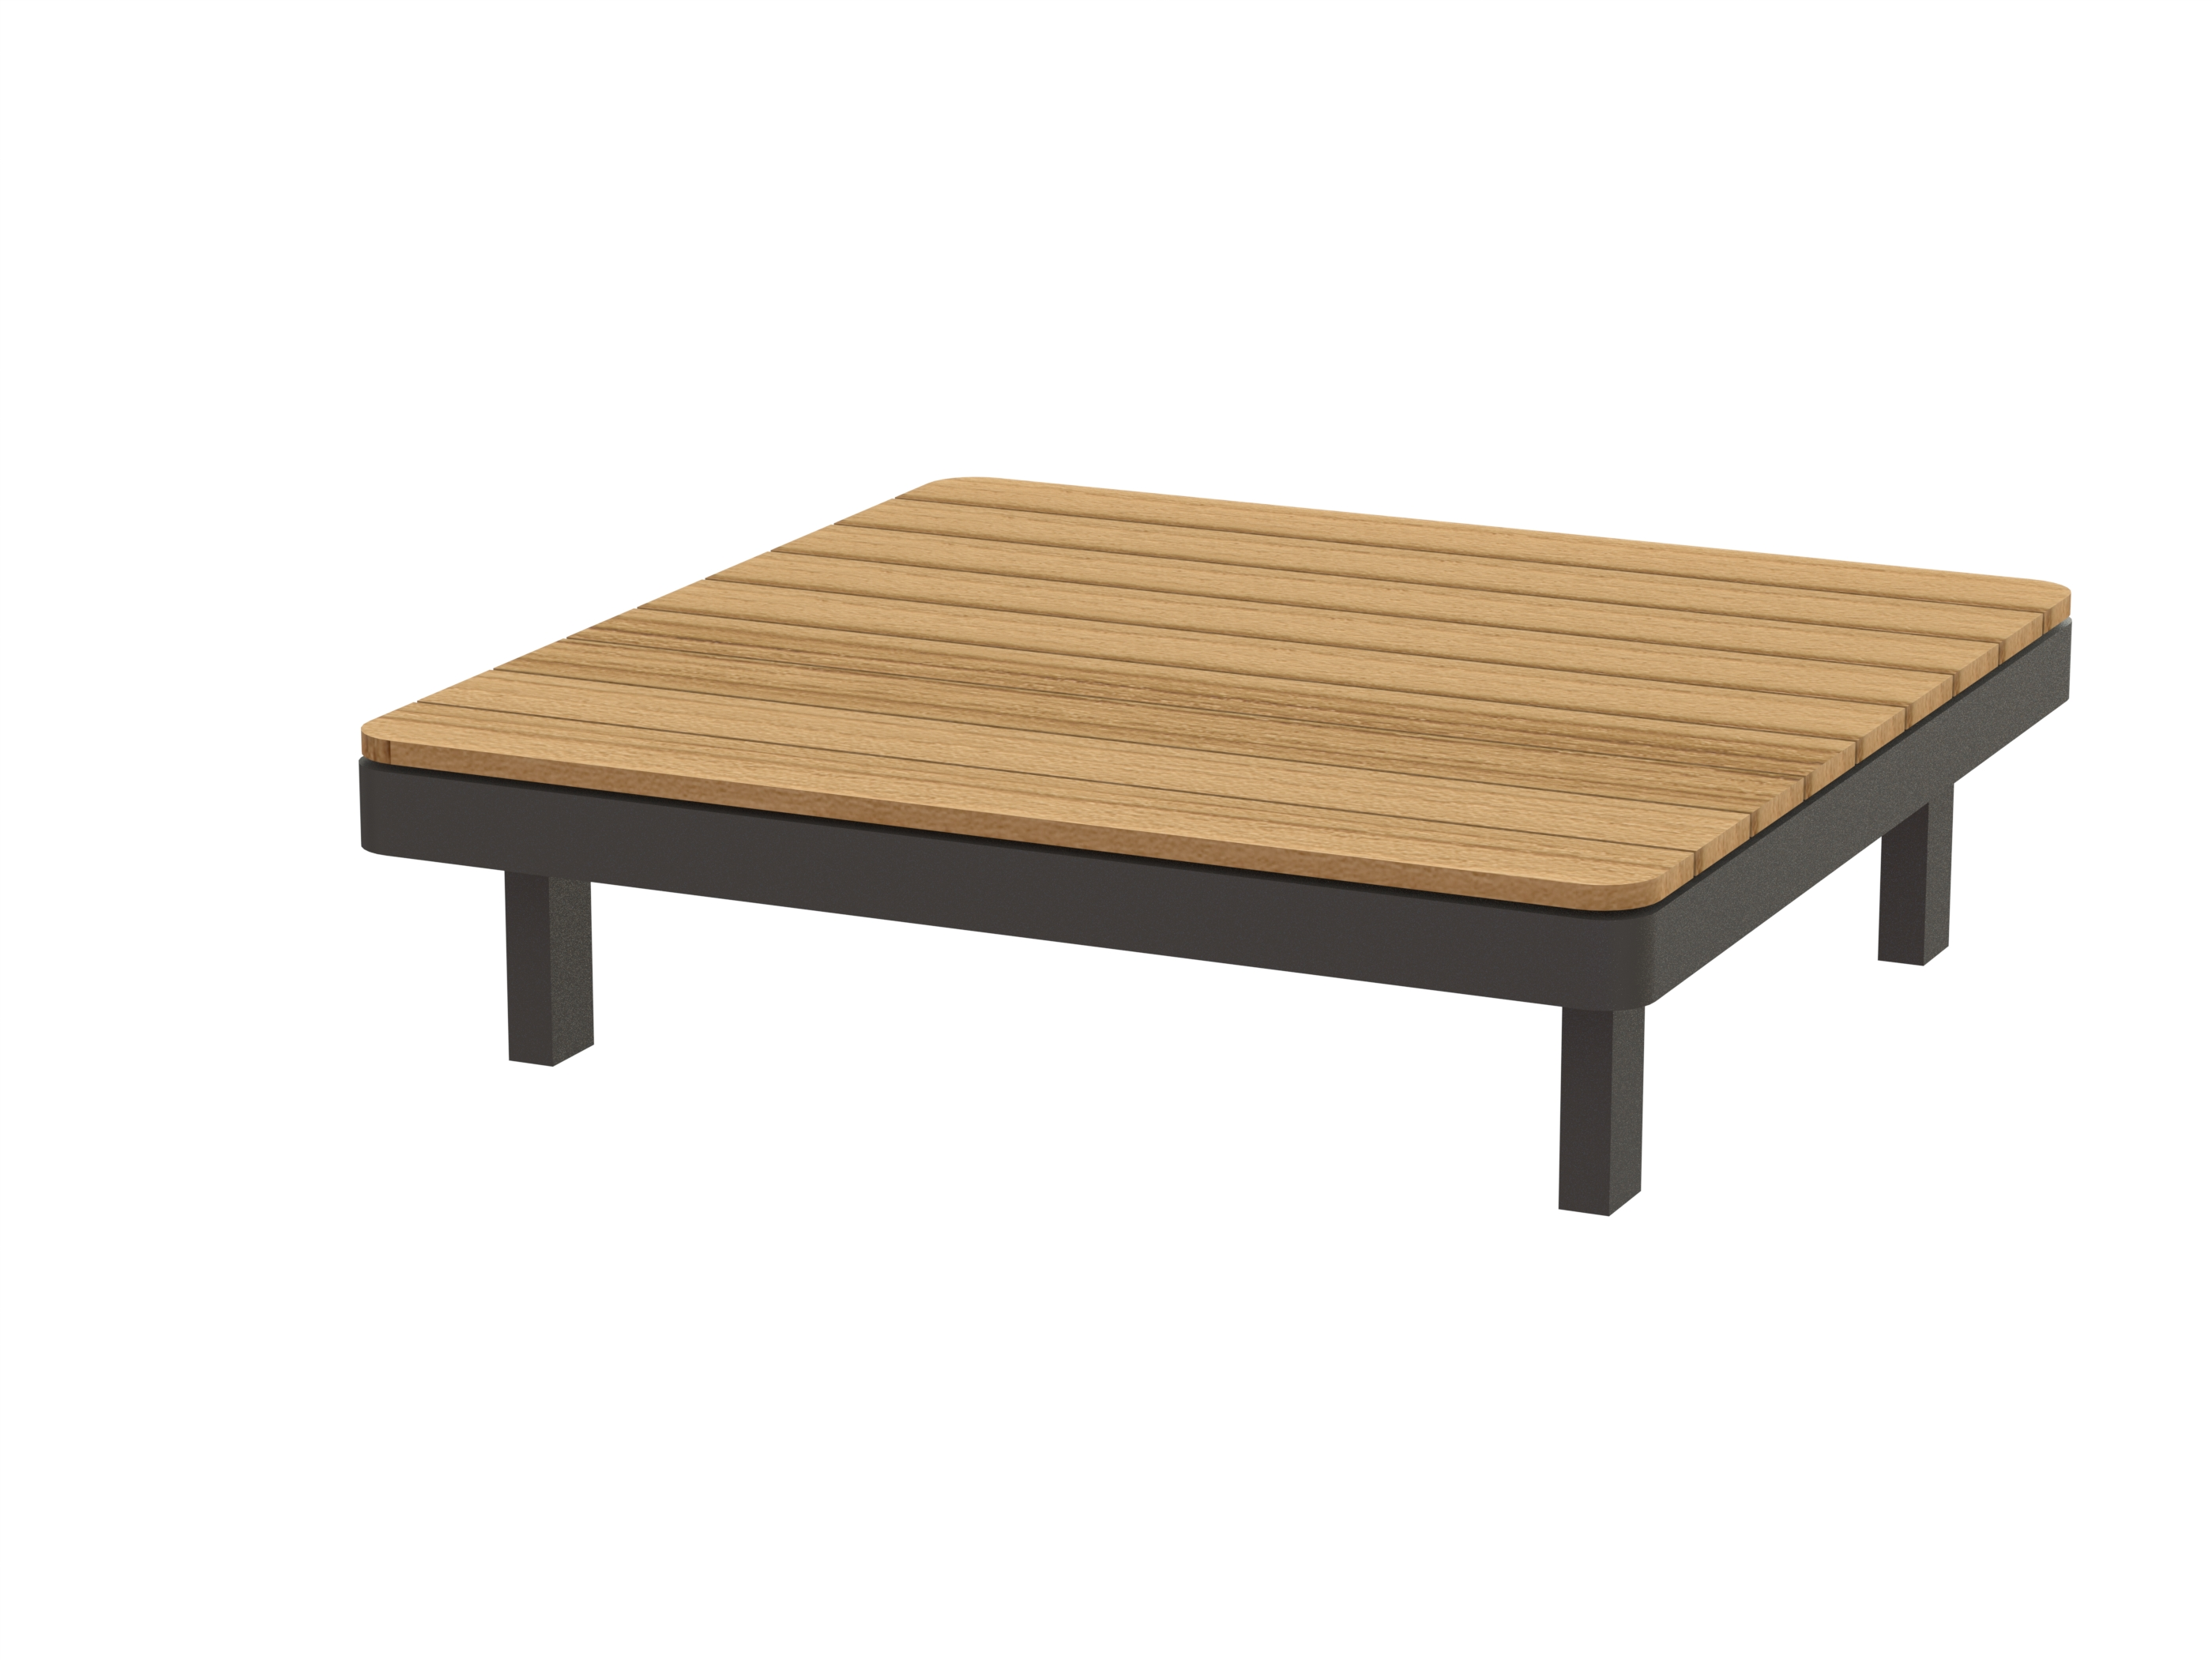 Low square teak garden side table alura lounge collection by royal botania design kris van puyvelde Patio coffee tables